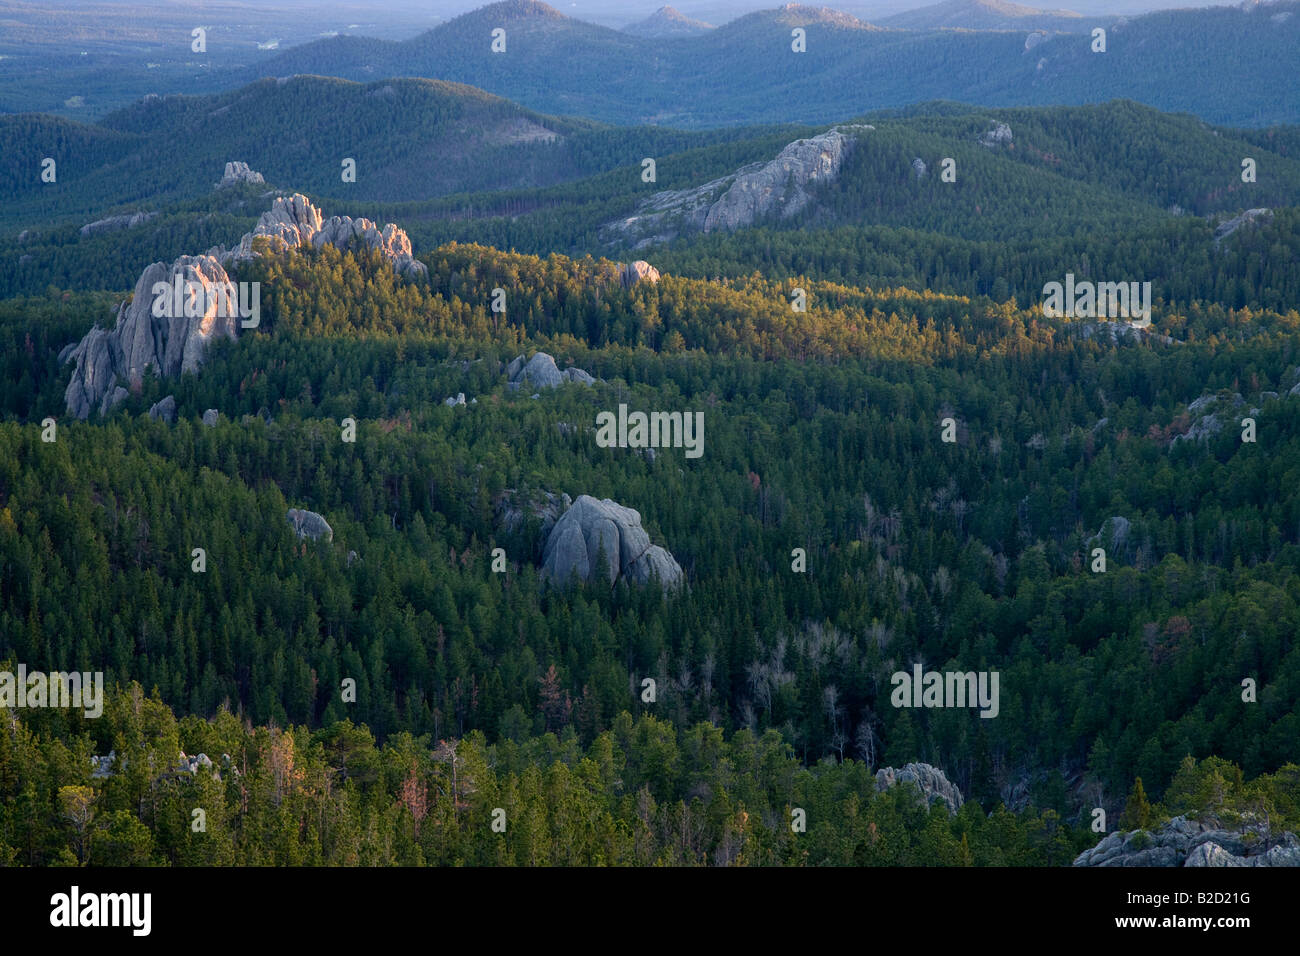 Black Hills from Little Devils Tower, Custer State Park and Black Hills National Forest, South Dakota - Stock Image